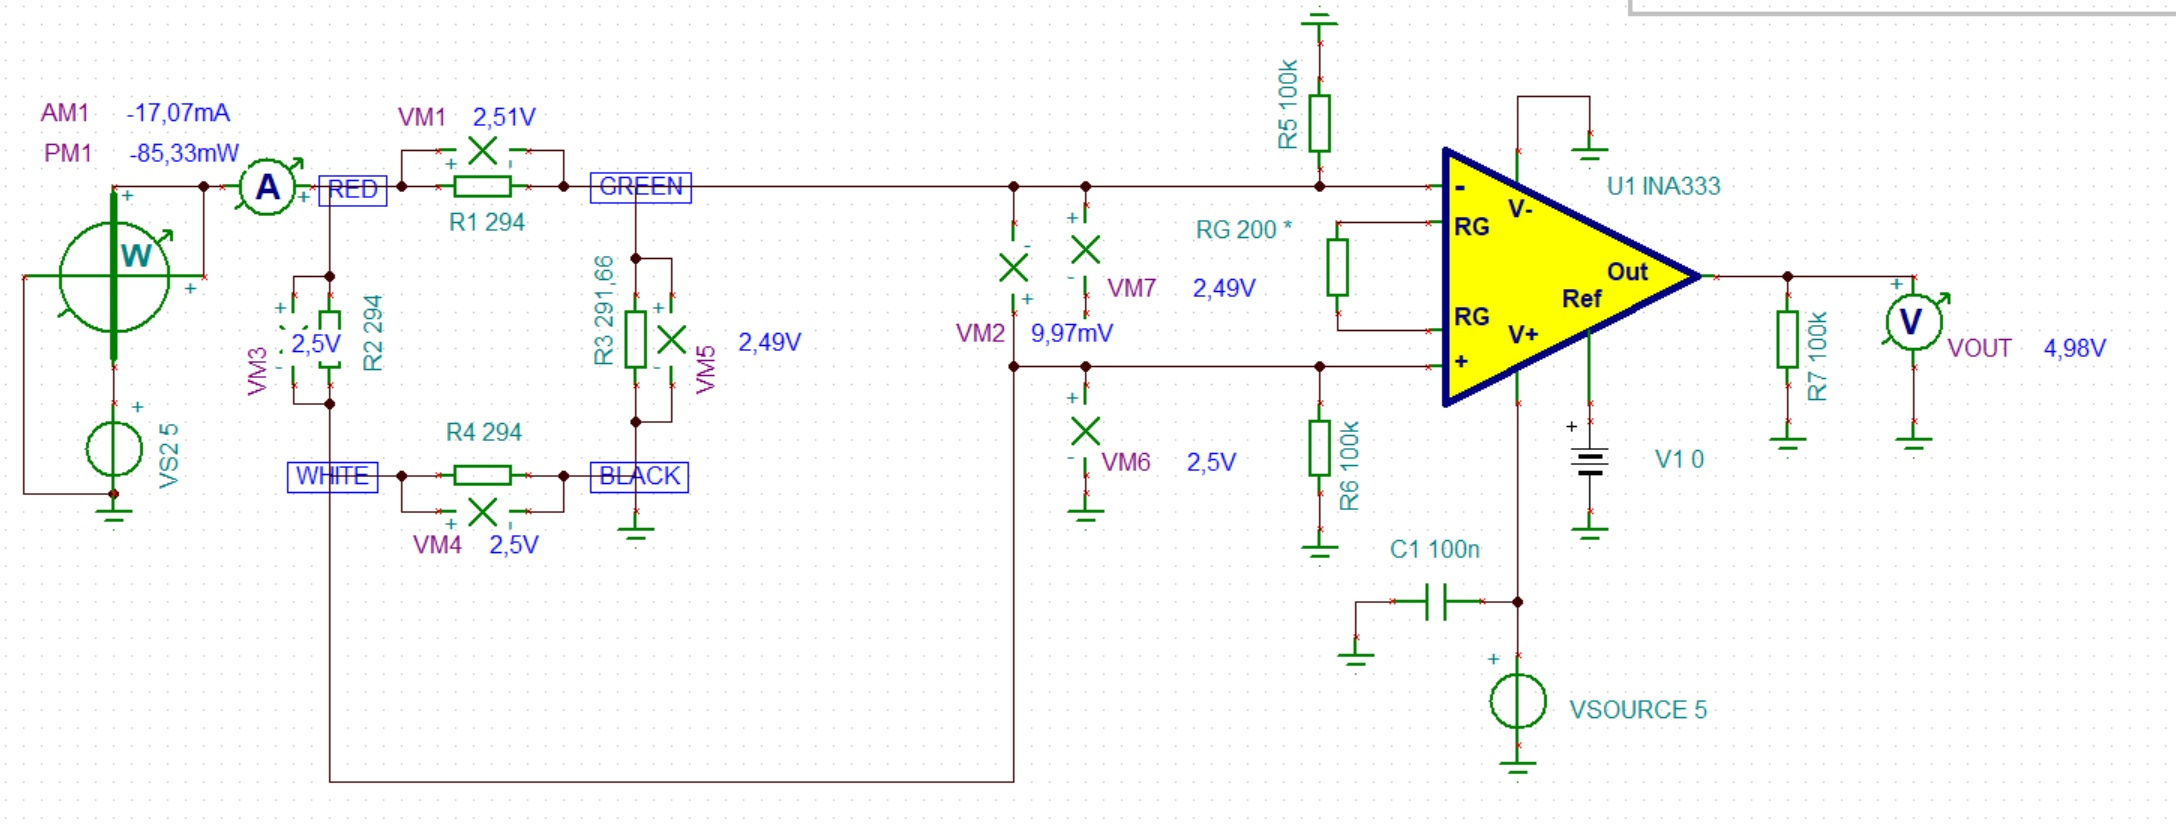 Ina333 Unstable Voltage At Differential Inputs With A Load Cell Innovate Lc 1 Wiring I Used An Input Signal Varying From To 2v And The Is Showing Desired Gain On Output For This Reason Am Confident That